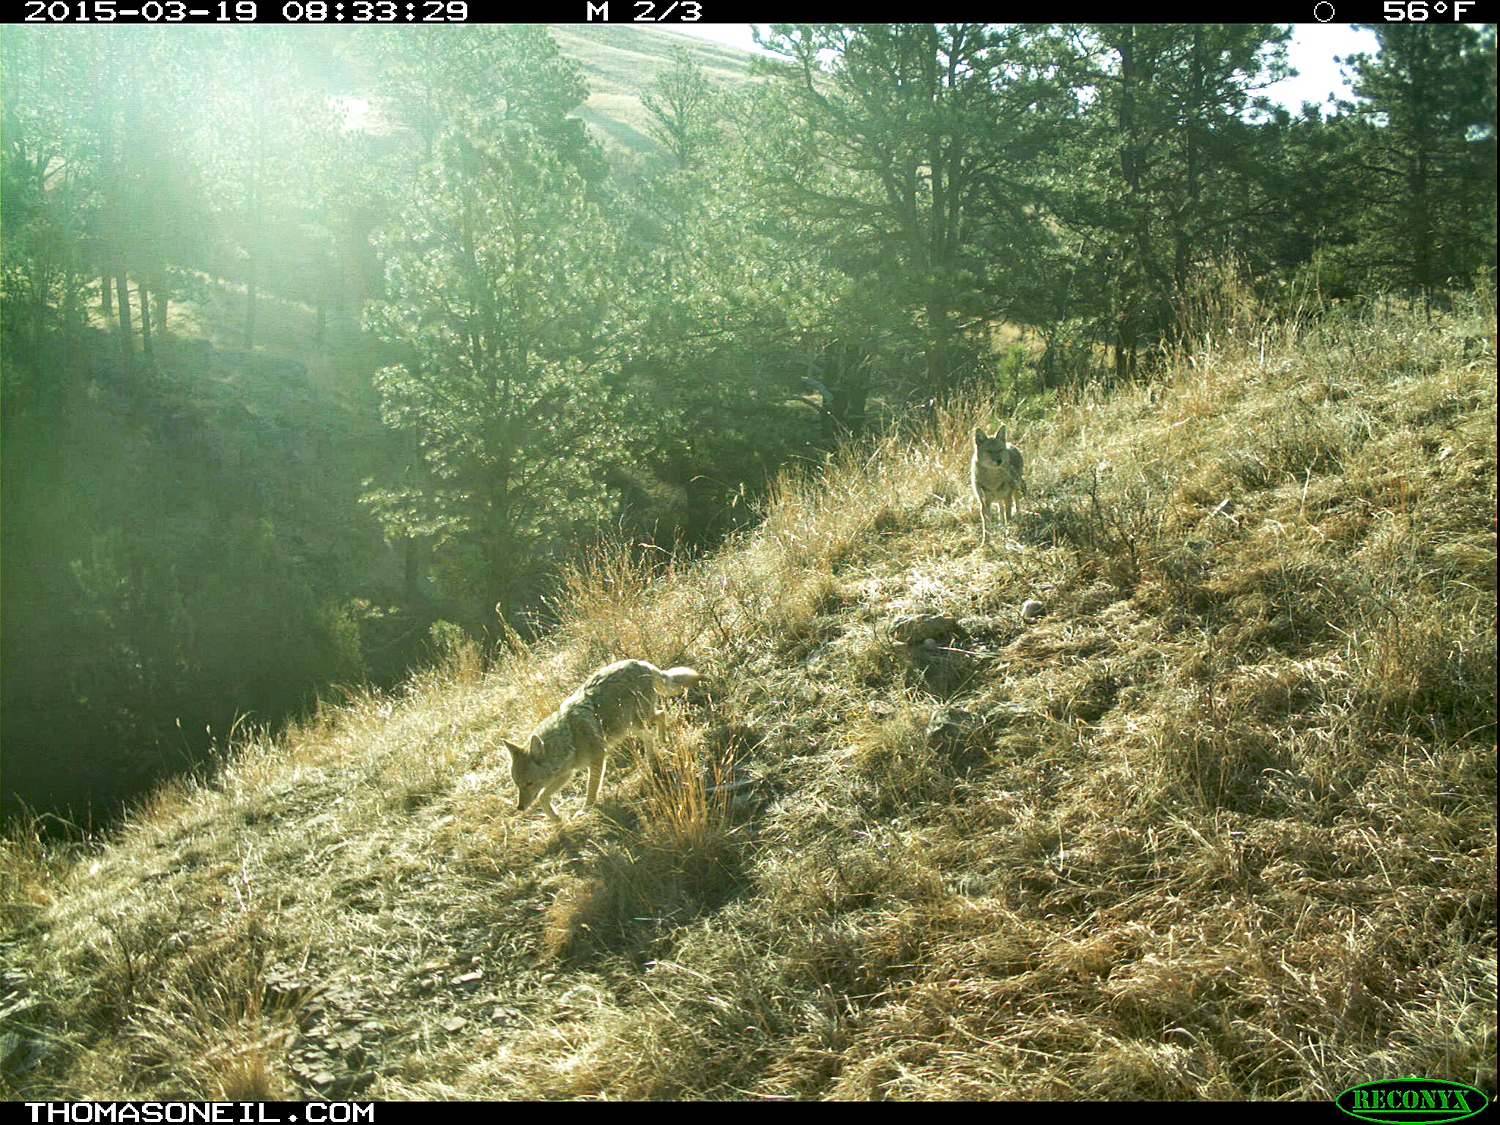 Two coyotes on trailcam, Wind Cave National Park, March 2015,